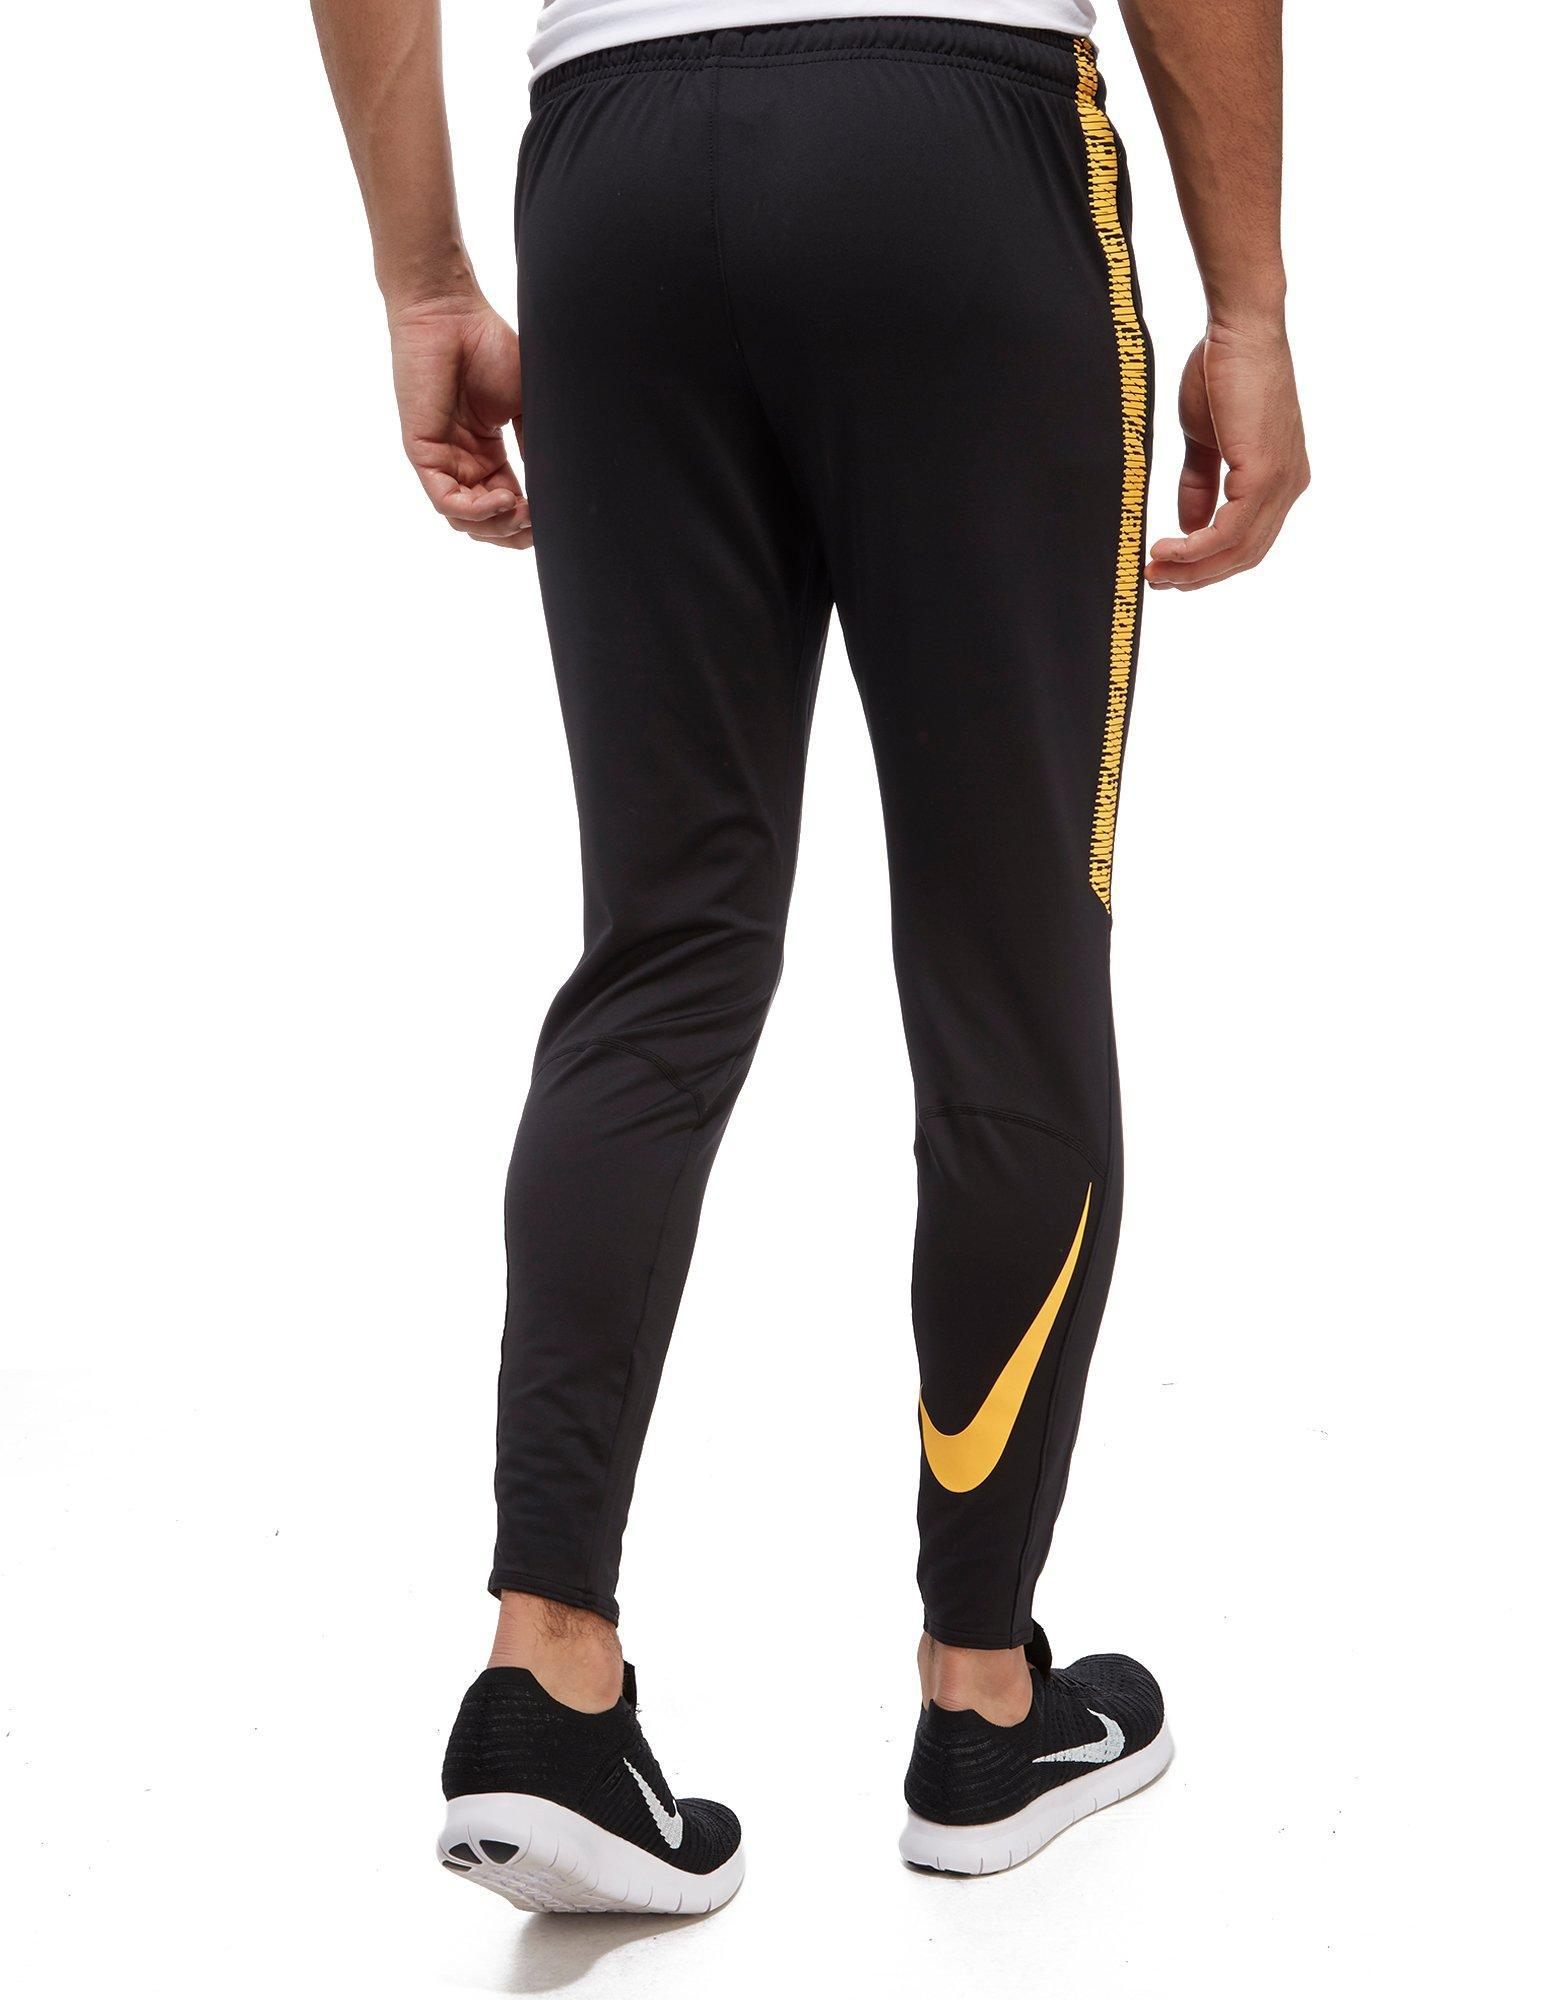 new product f7c6b 45e27 Lyst - Nike Dry Squad Football Pants in Black for Men